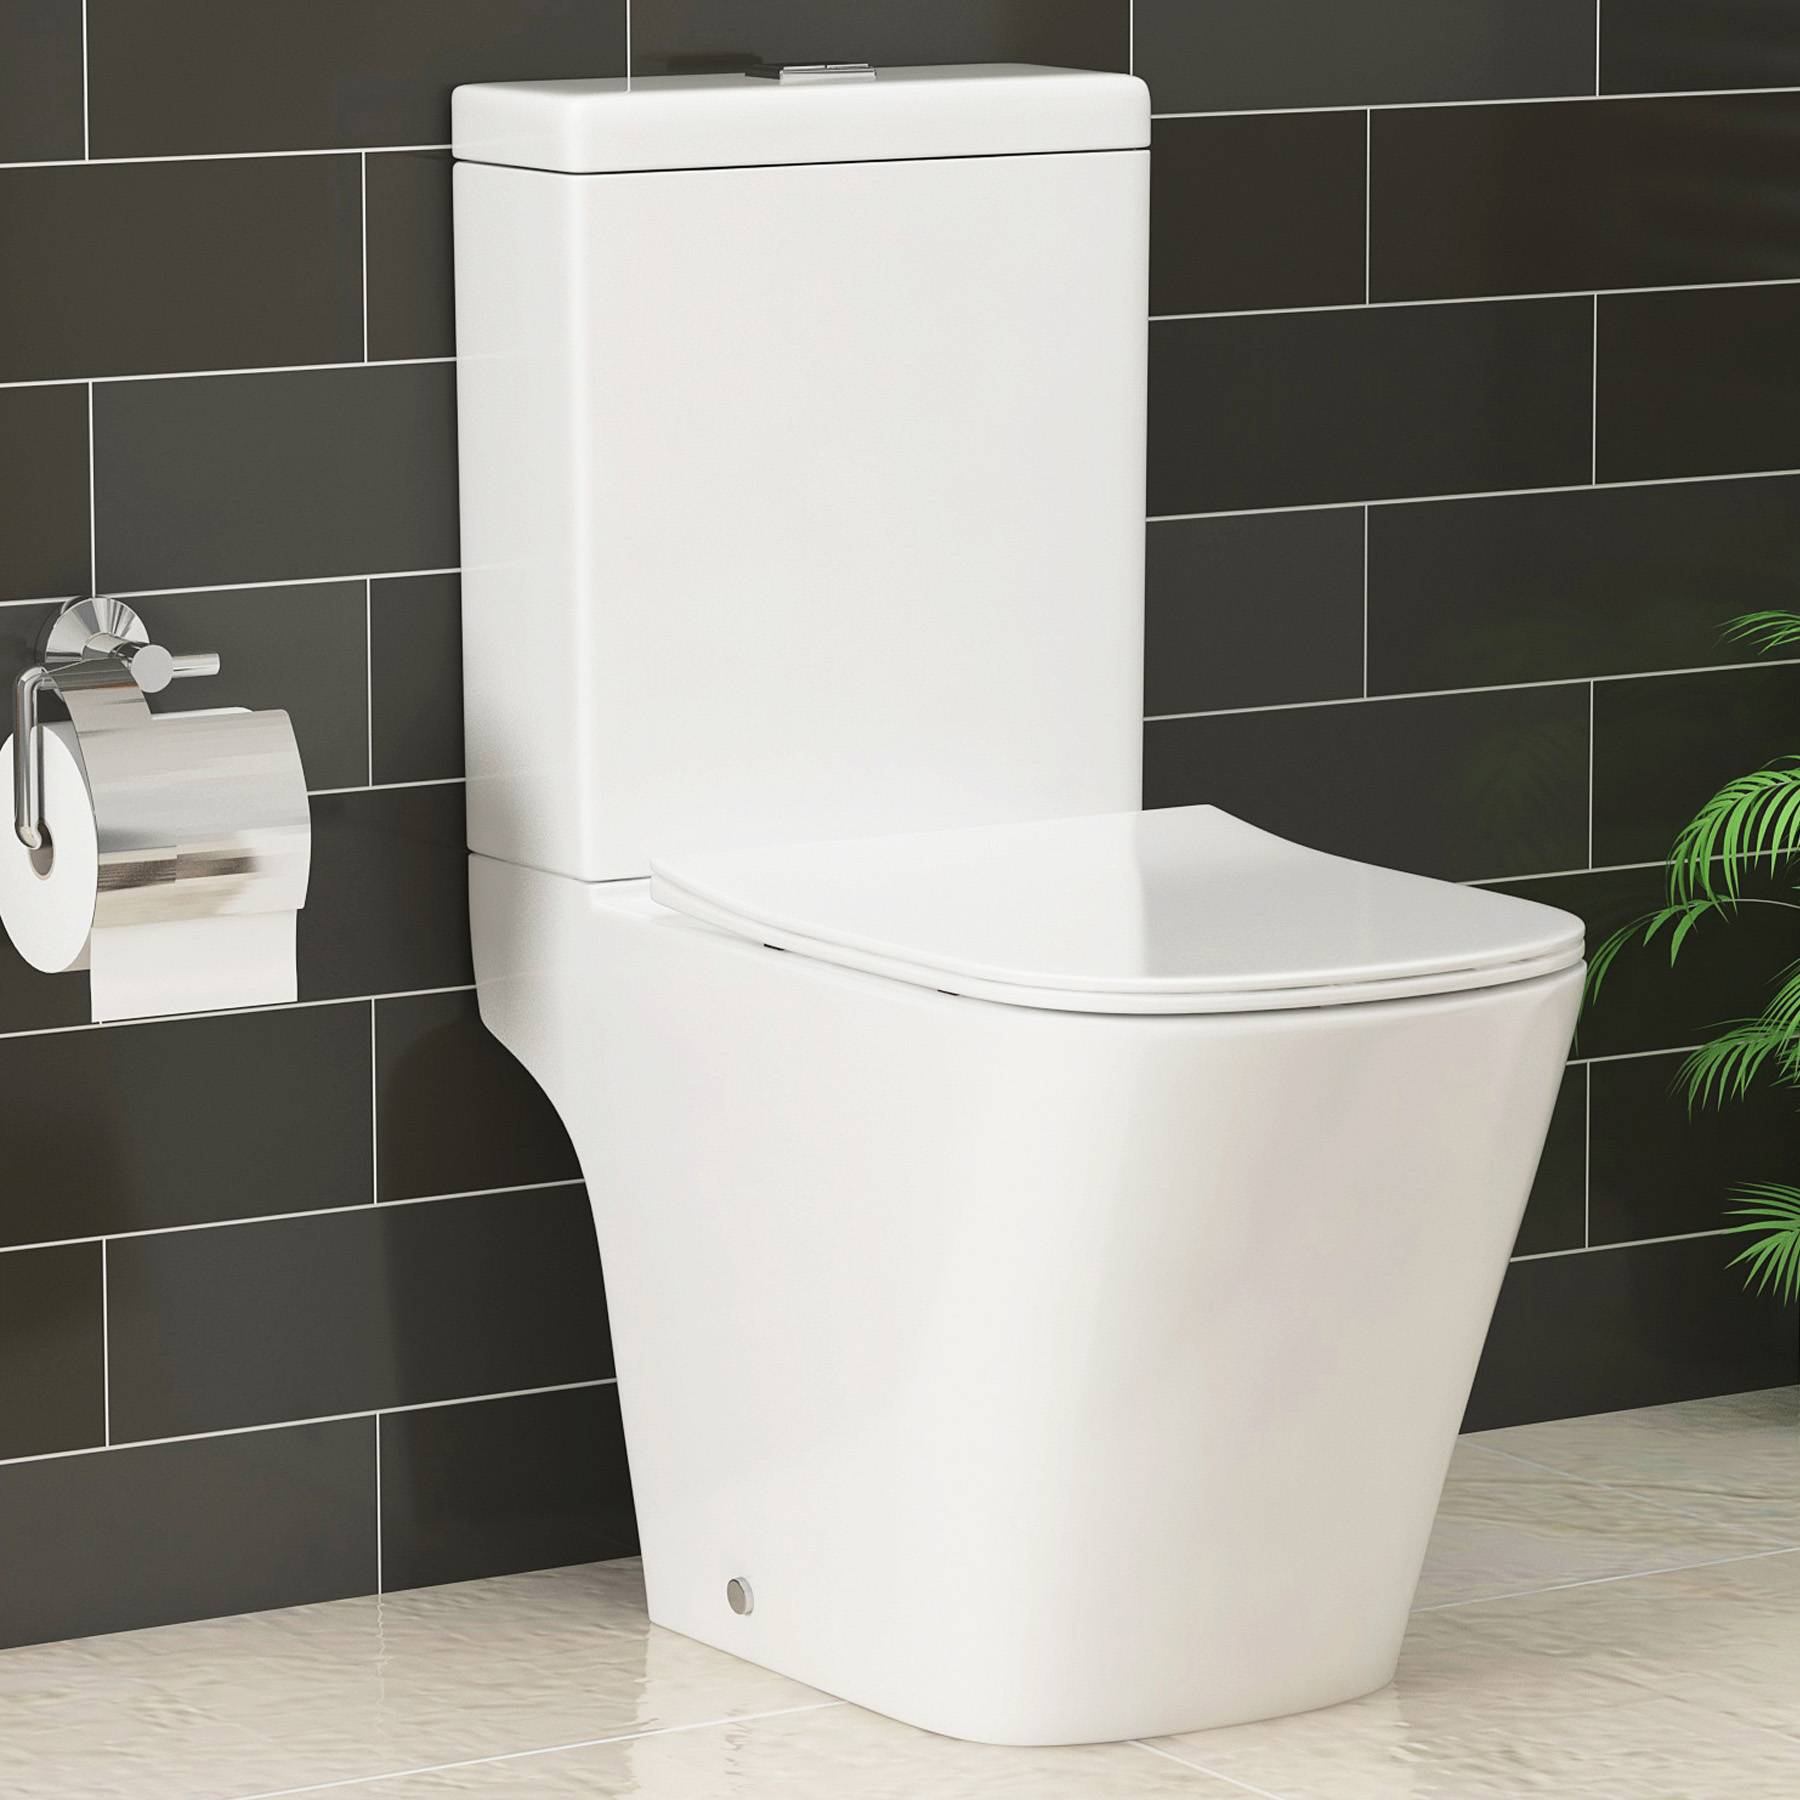 Royal Bathrooms Elite Rimless Square Close Coupled Toilet and Slim Soft Close Seat with Cistern